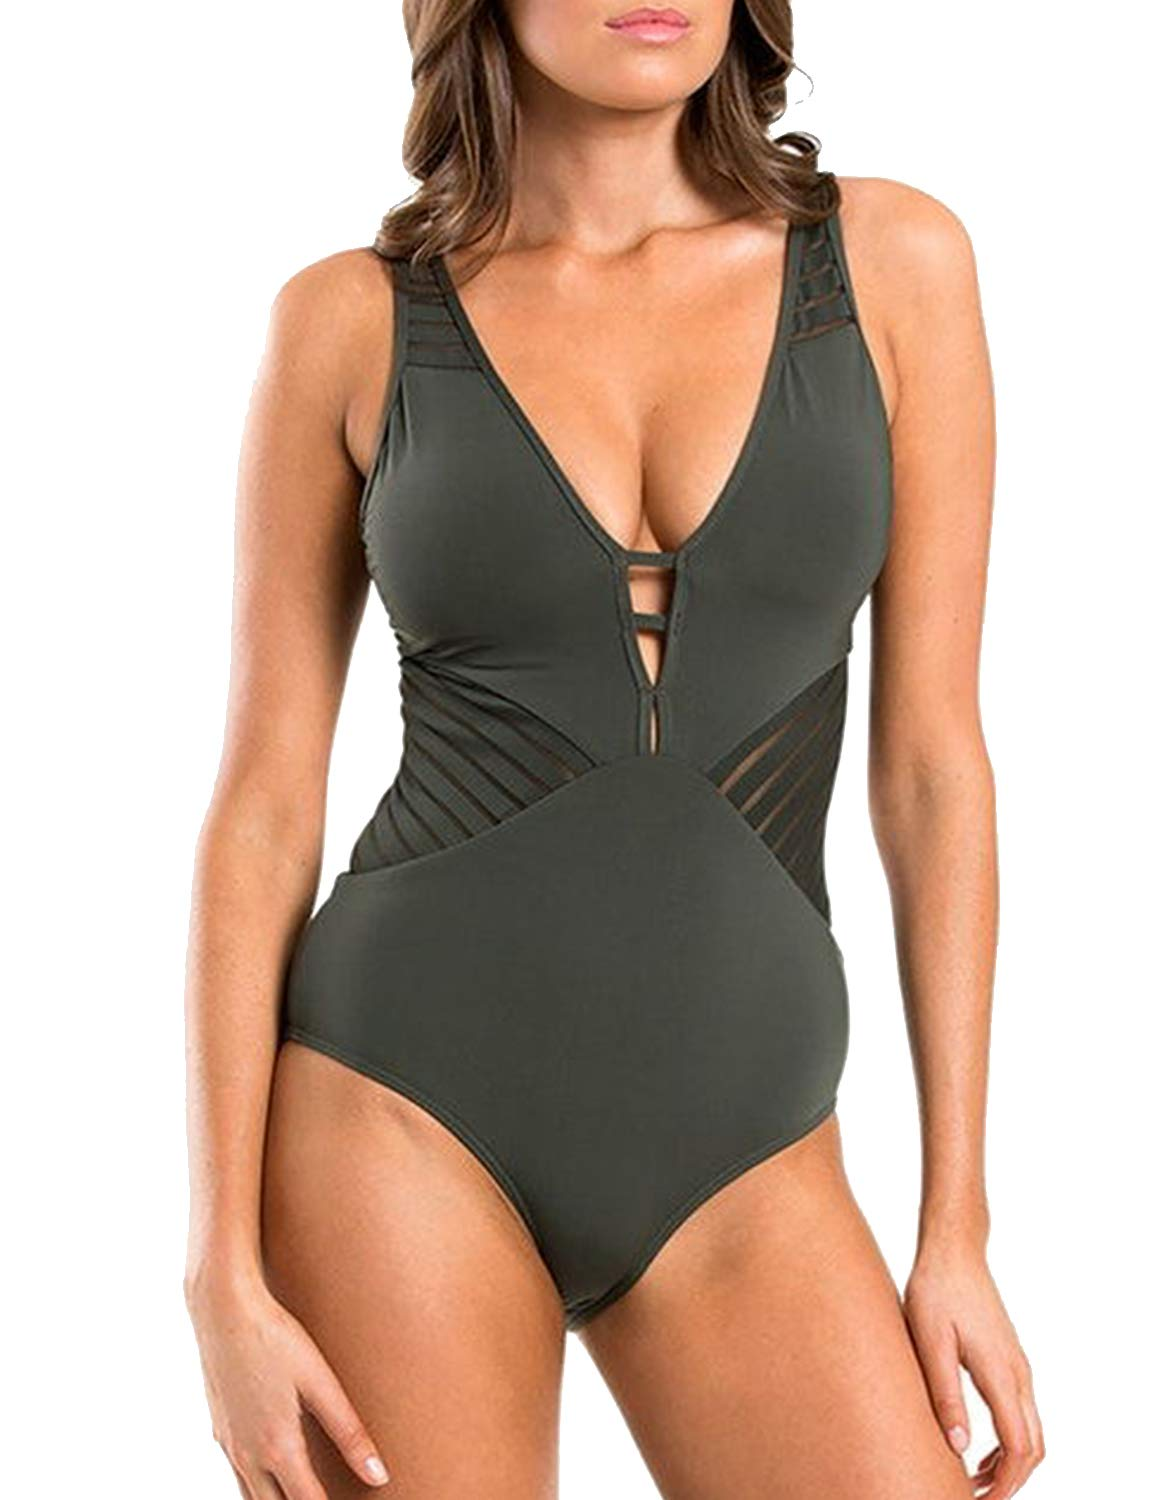 Womens One Piece Swimsuit Mesh Deep V Neck Cut Out Bathing Suit Army Green